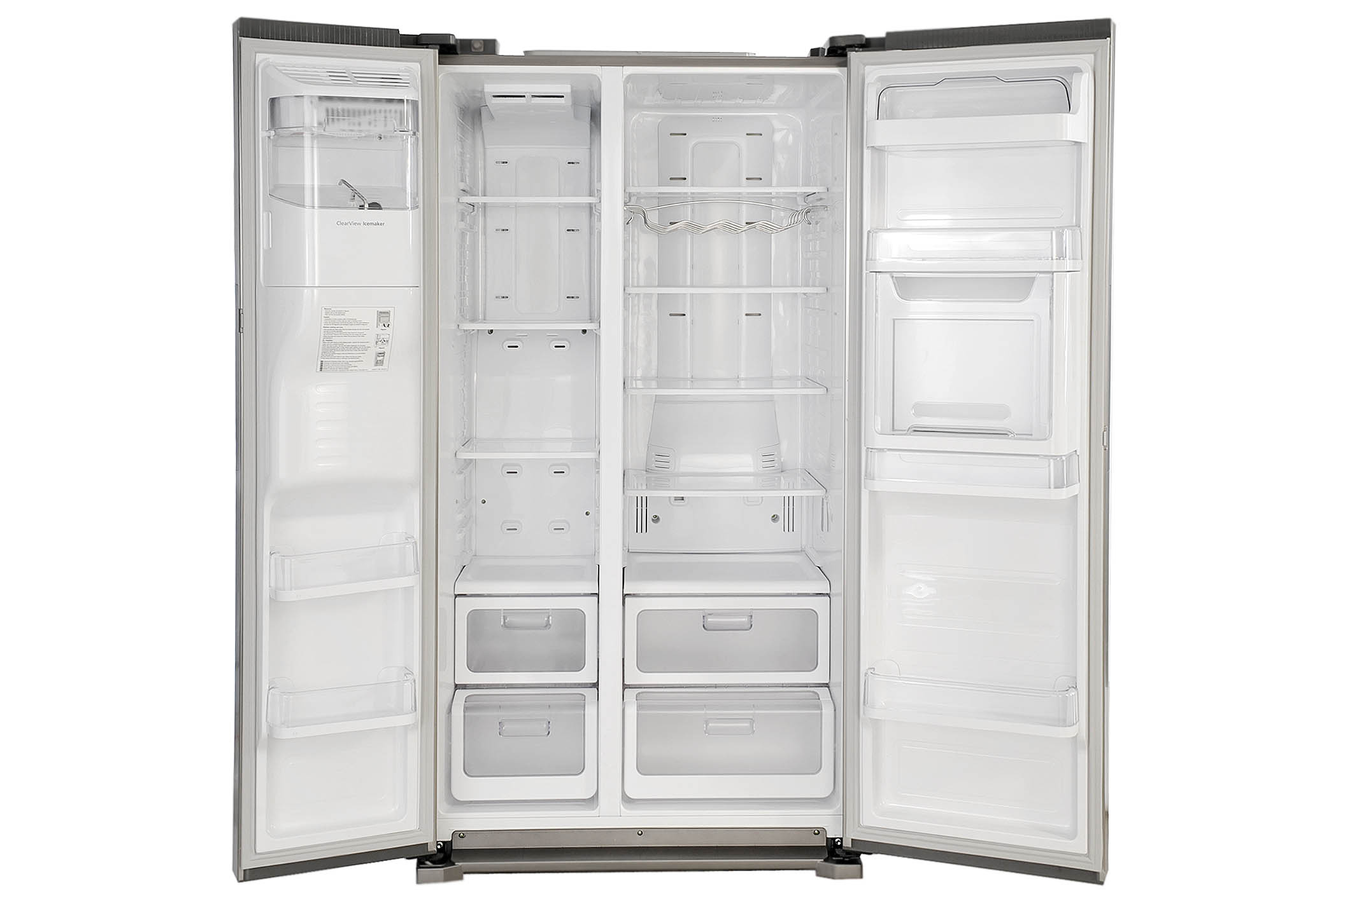 refrigerateur congelateur samsung froid ventile r frig. Black Bedroom Furniture Sets. Home Design Ideas